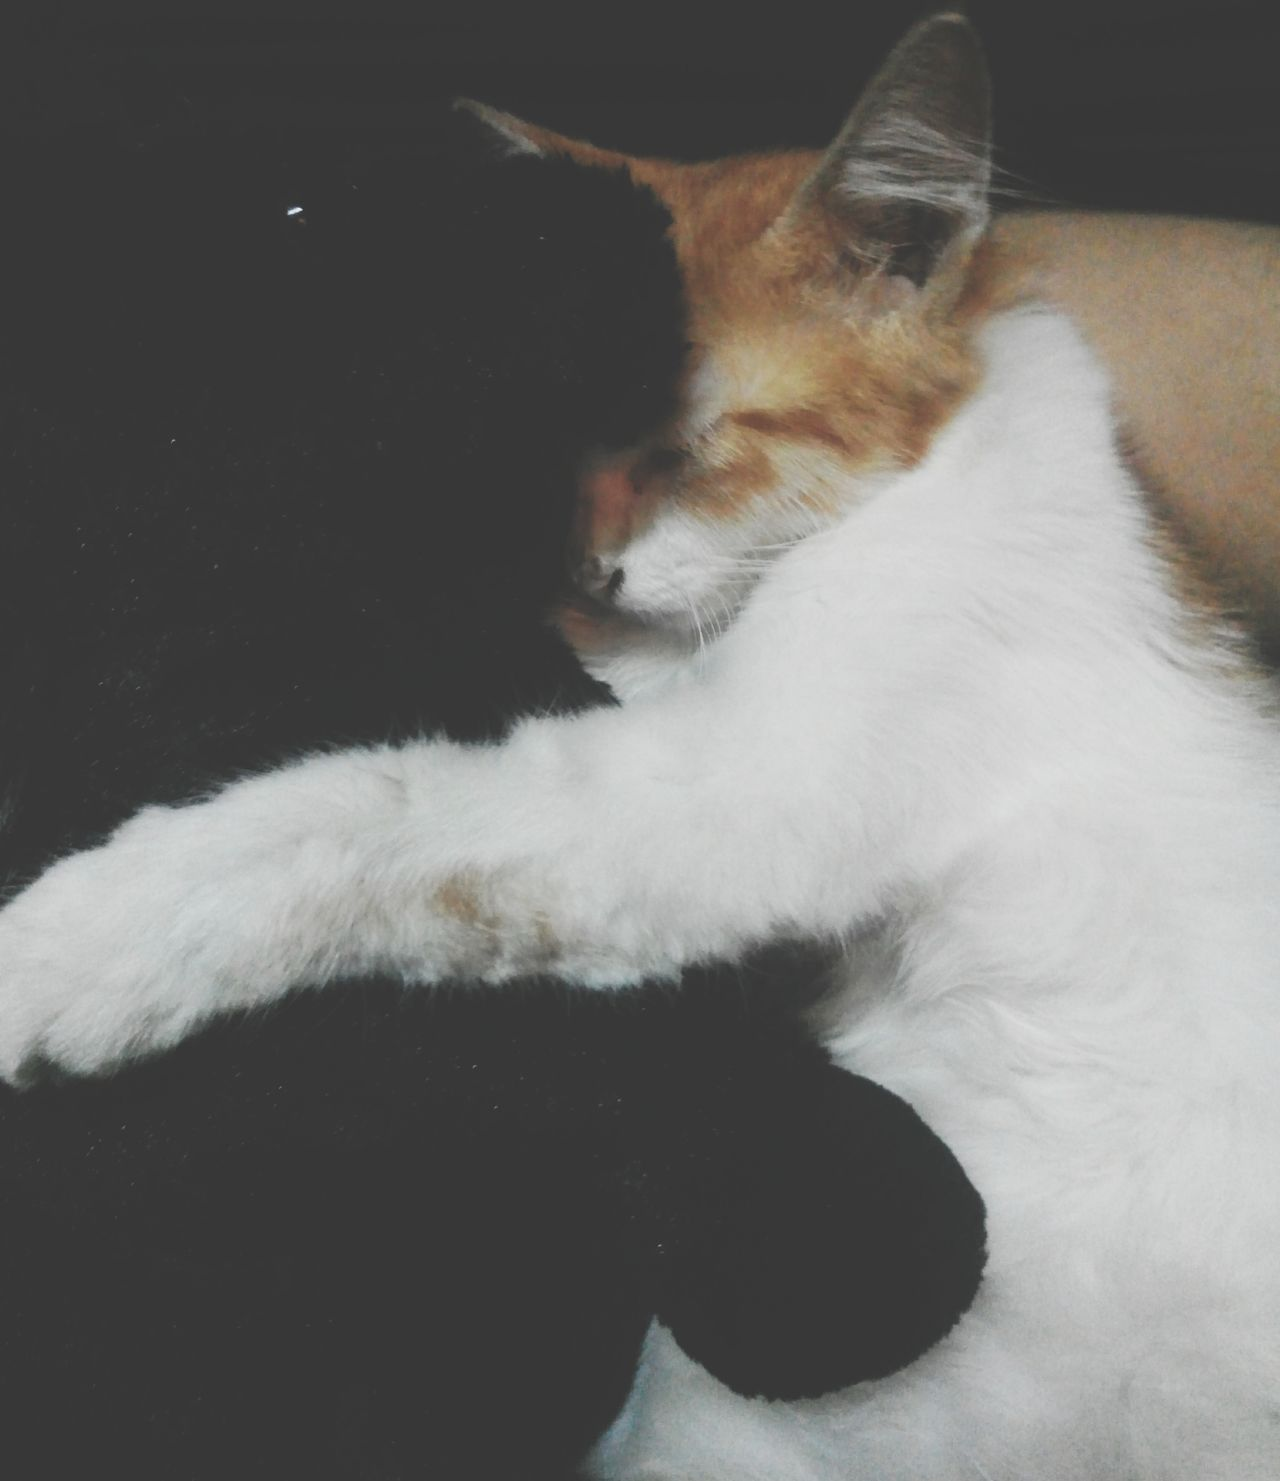 because they are loving each other 😍😘 Pets One Animal Indoors  Day Looking At Camera Cute Pets Doll My Lovely  Whisker Kitten Happiness Large Group Of People Domestic AnimalsNo People Togetherness Cheerful Indoors  Animal Dog Mammal Animal Themes Domestic Cat Close-up